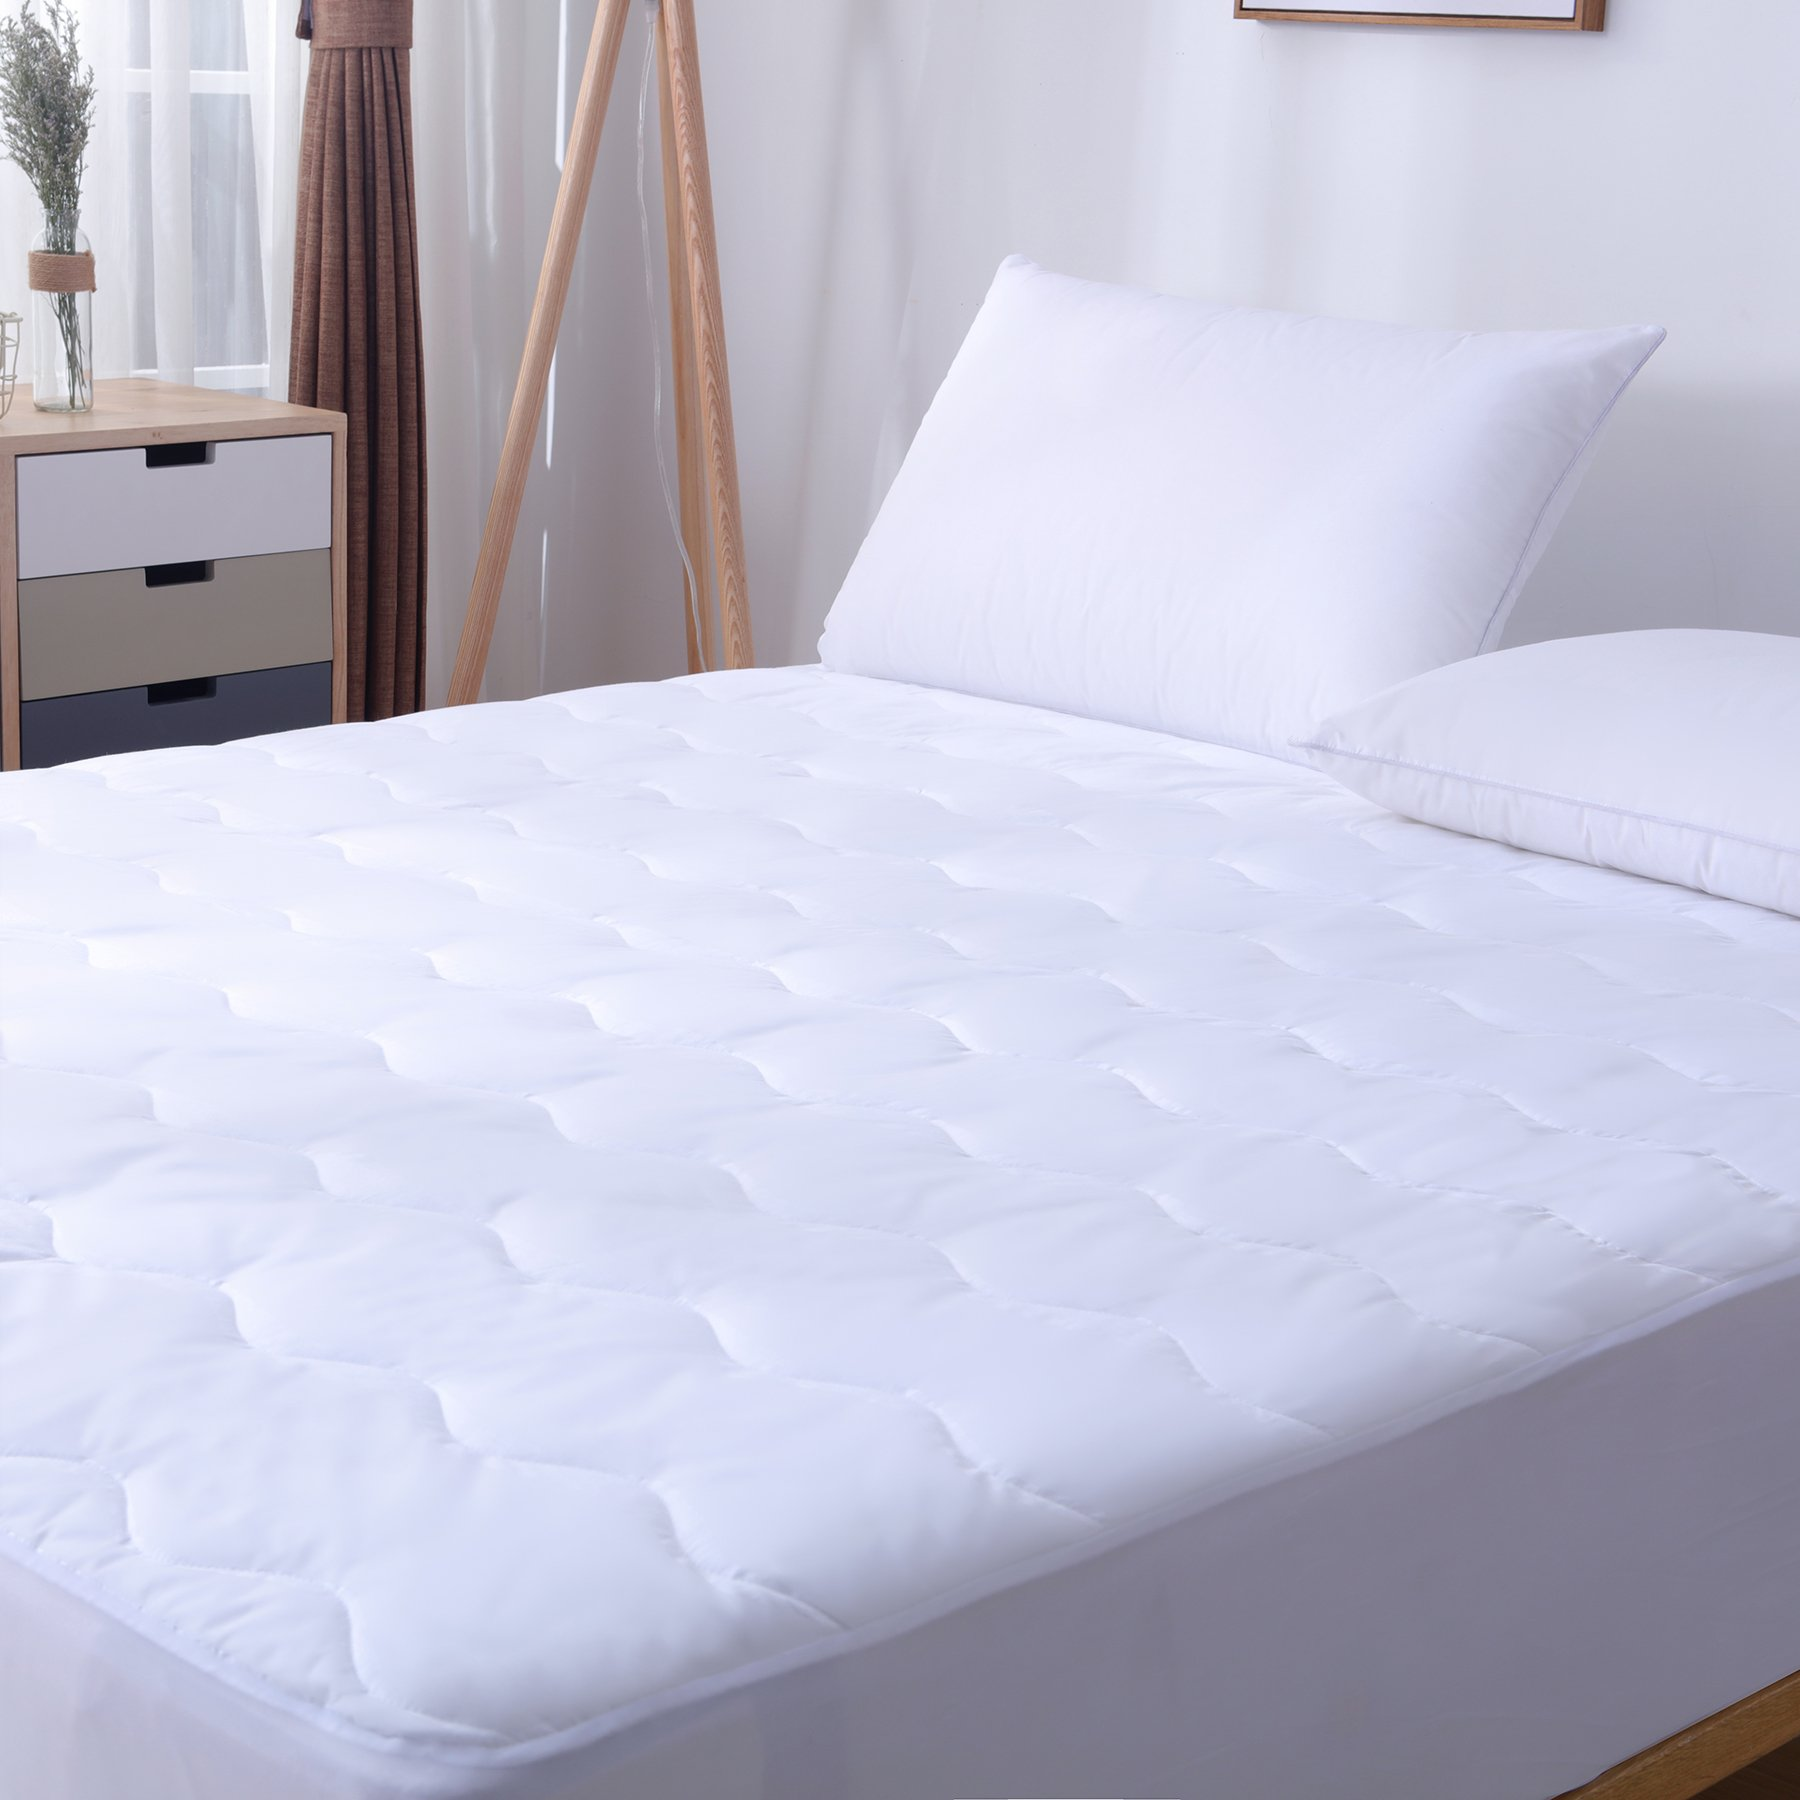 SweetBed Waterproof Mattress Pad Hypoallergenic Quilted 200TC Cotton Cover Protector (Full)